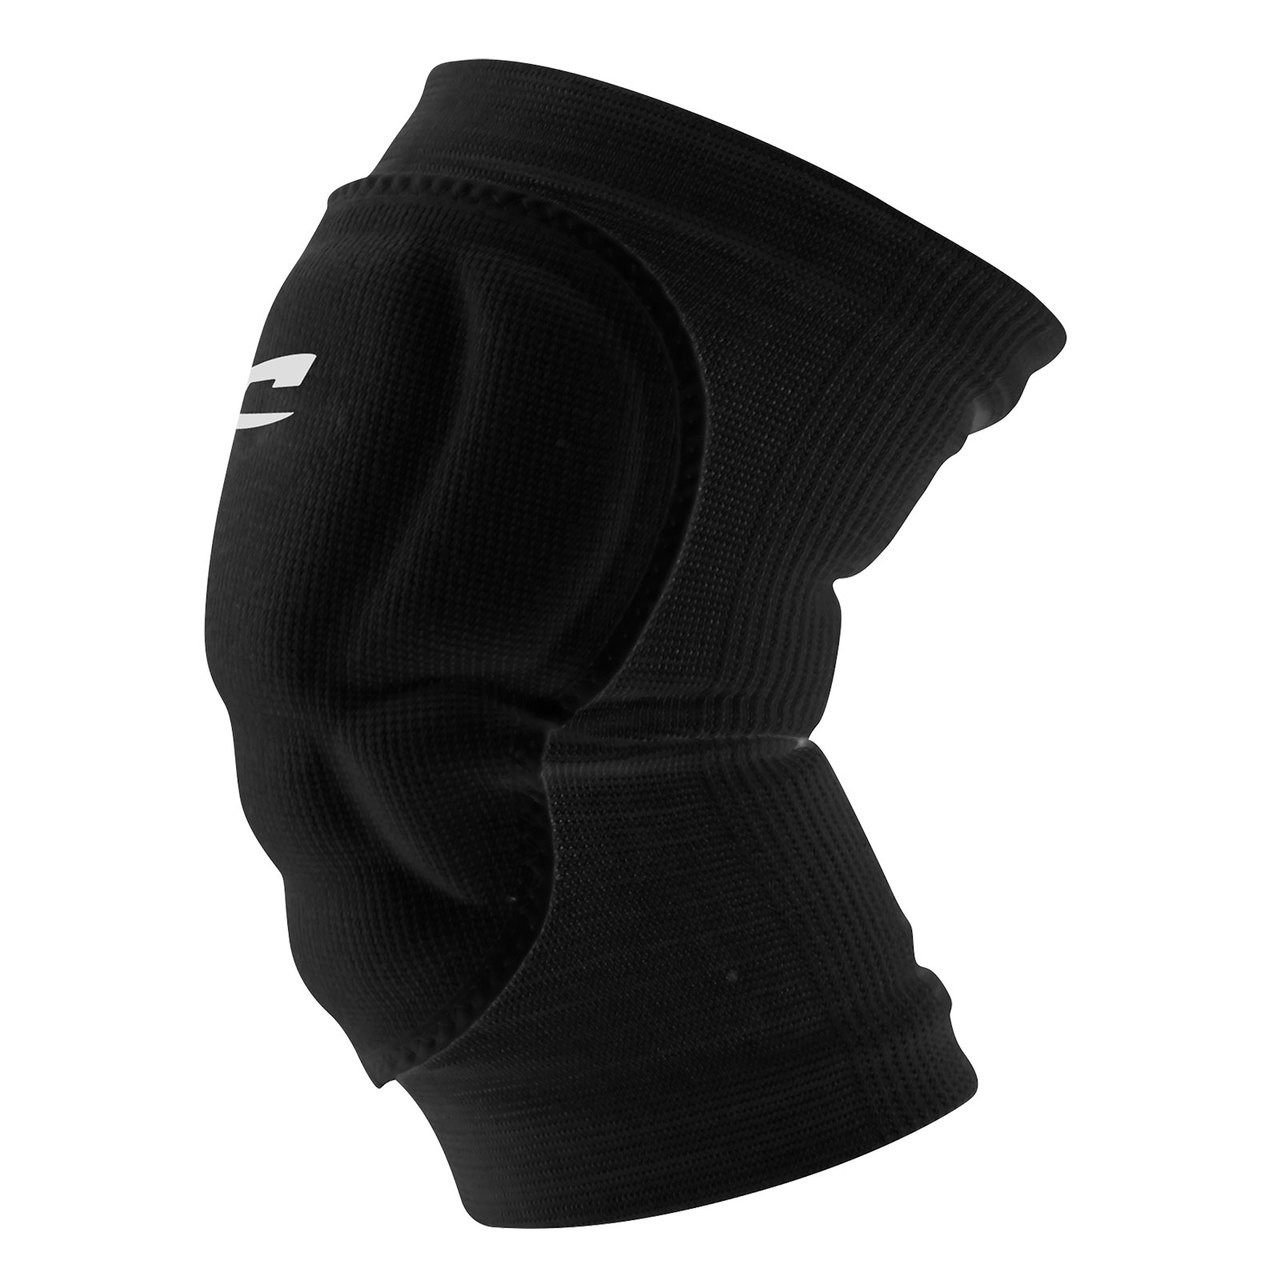 Champro High Compression Volleyball Knee Pads